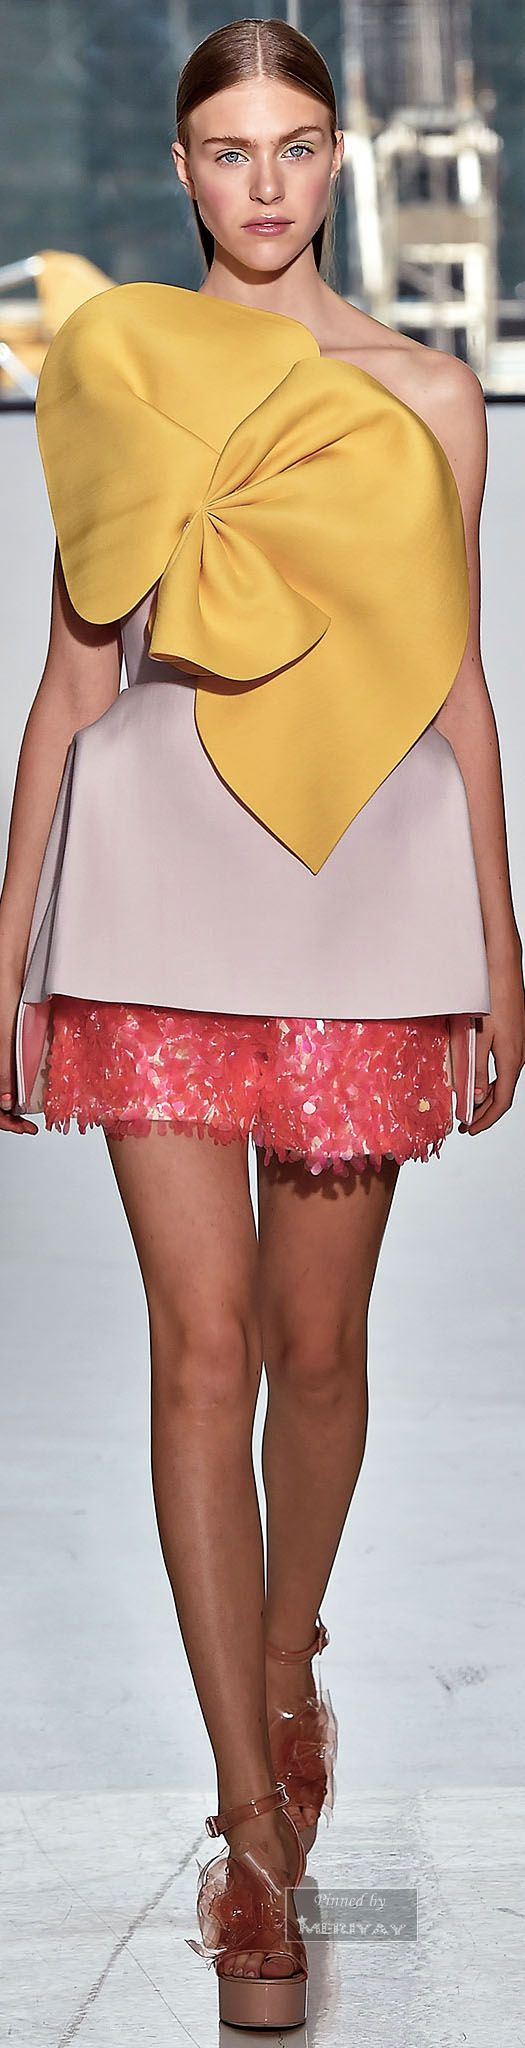 Delpozo.Spring 2015. Bow or flower?  I believe this is more bow like.